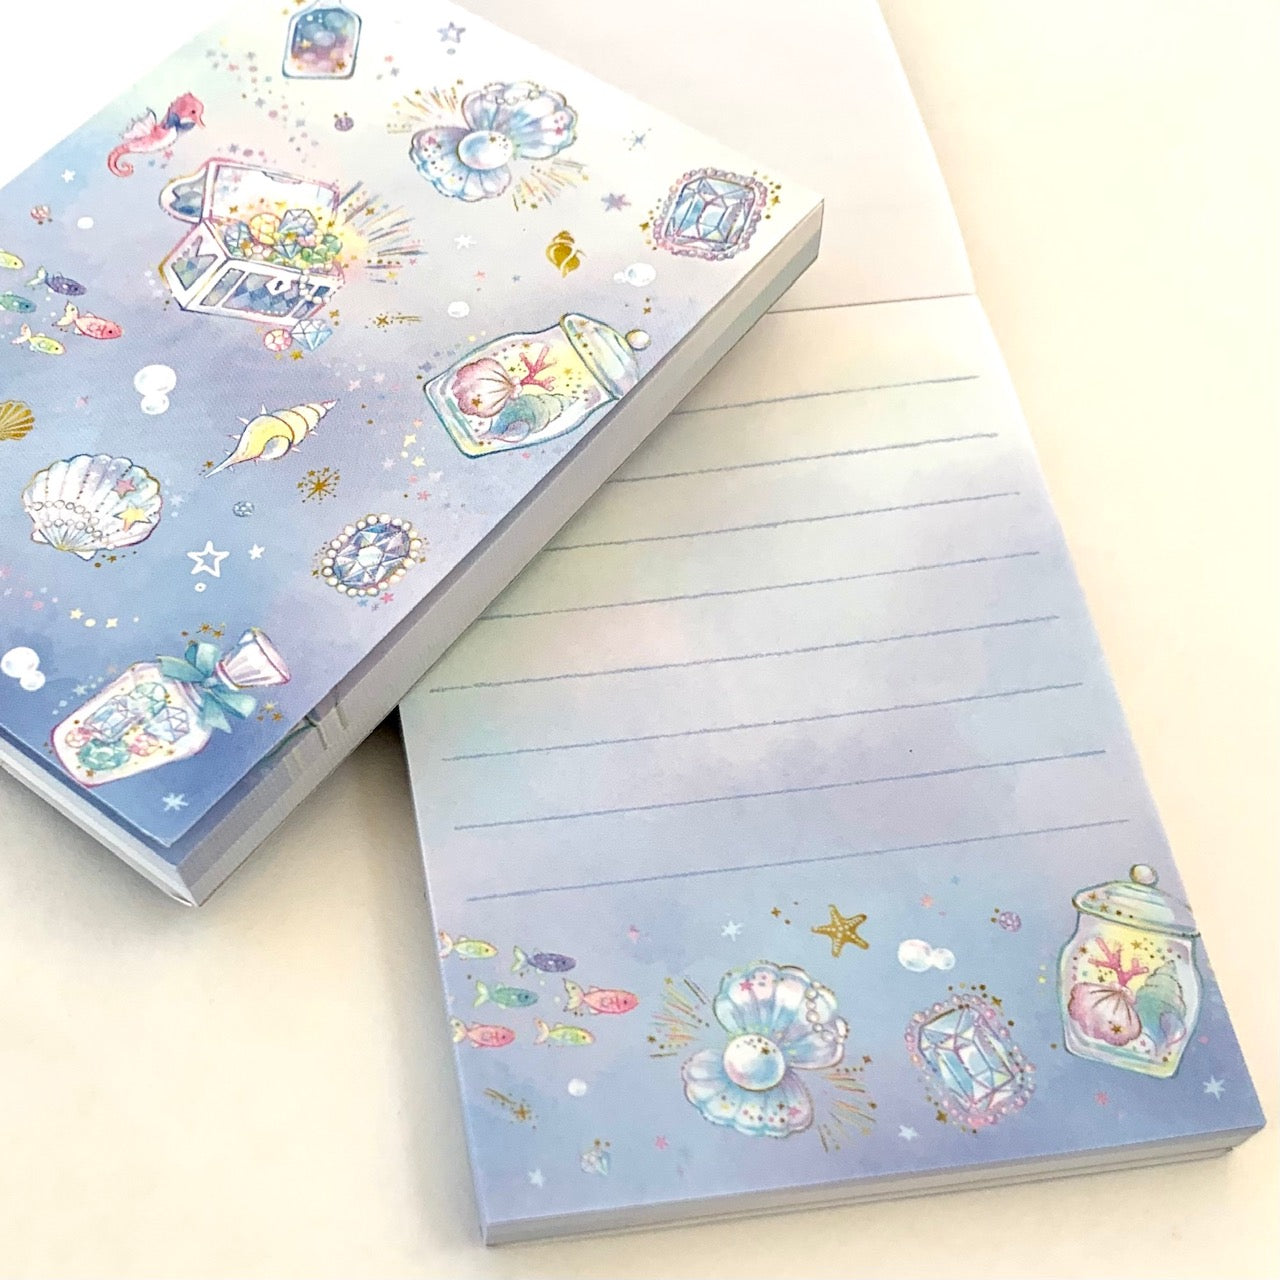 14523 Qlia Seashell Petit Notepad-DISCONTINUED